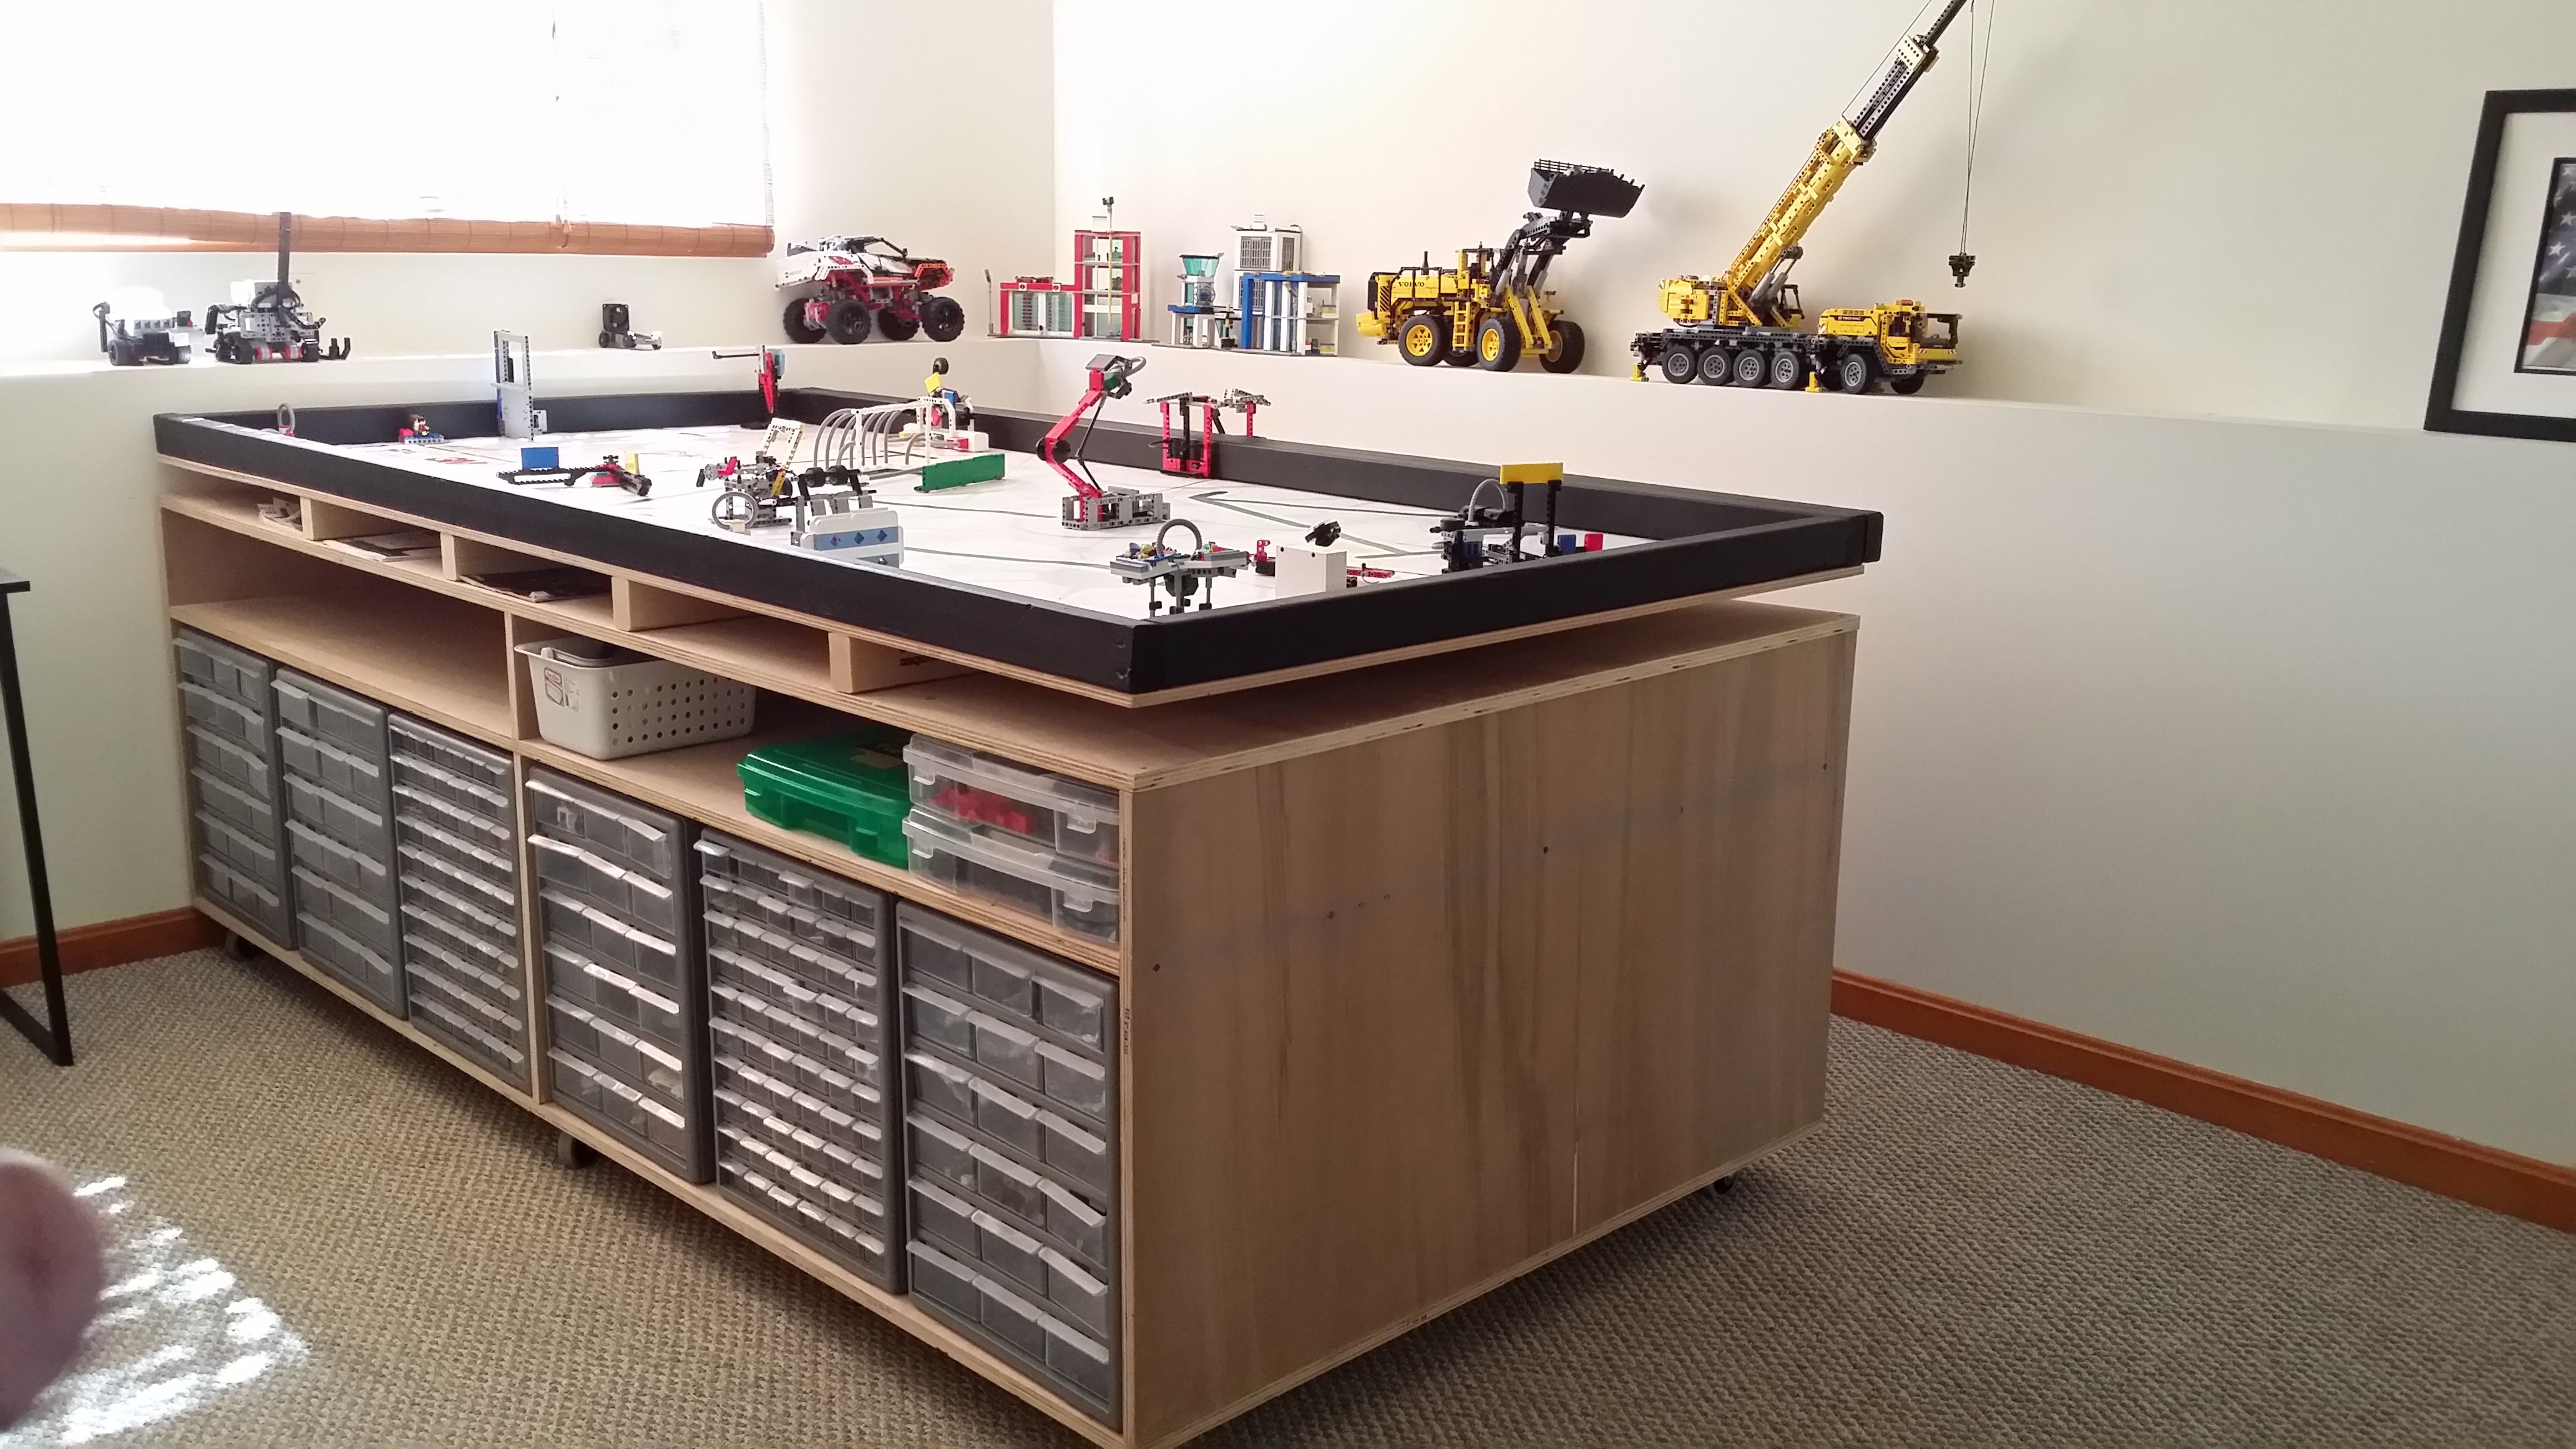 Fll Lego Table My Daughter And I Built